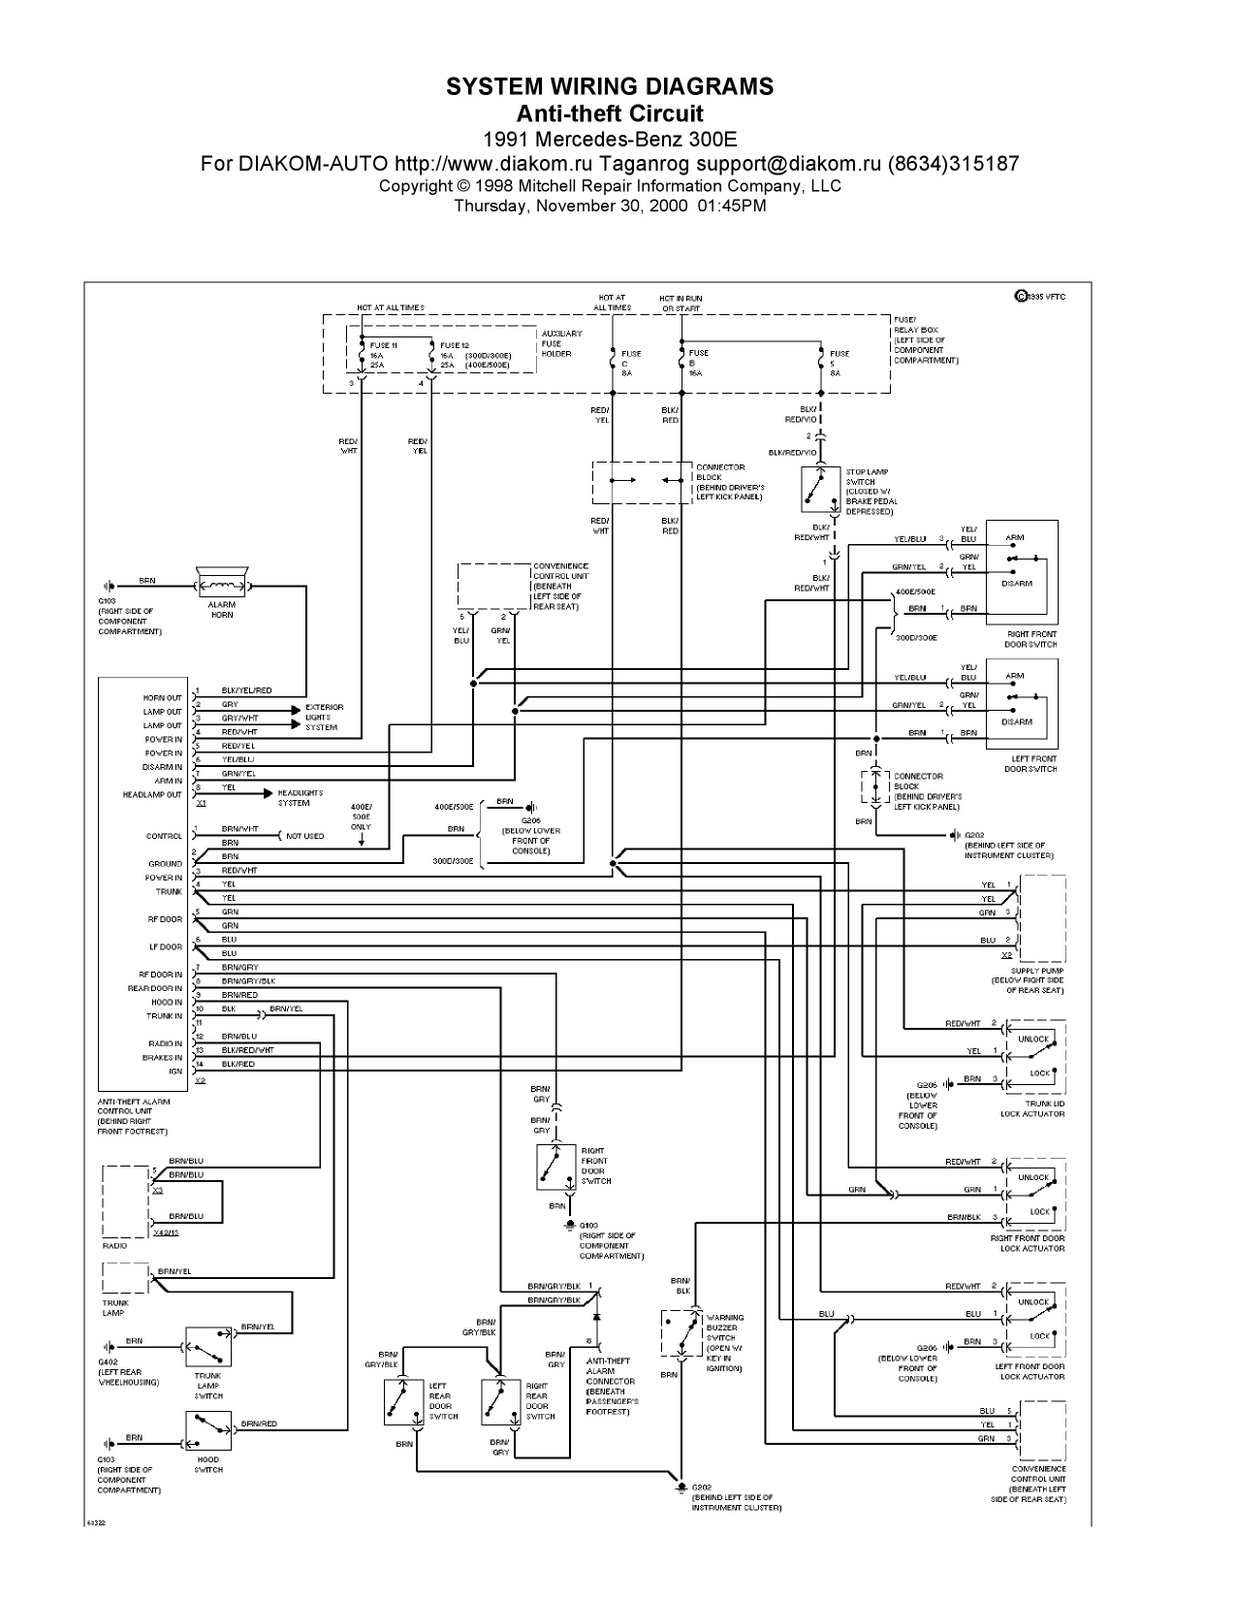 Mercedes Benz 300e System Wiring Diagrams Anti Theft